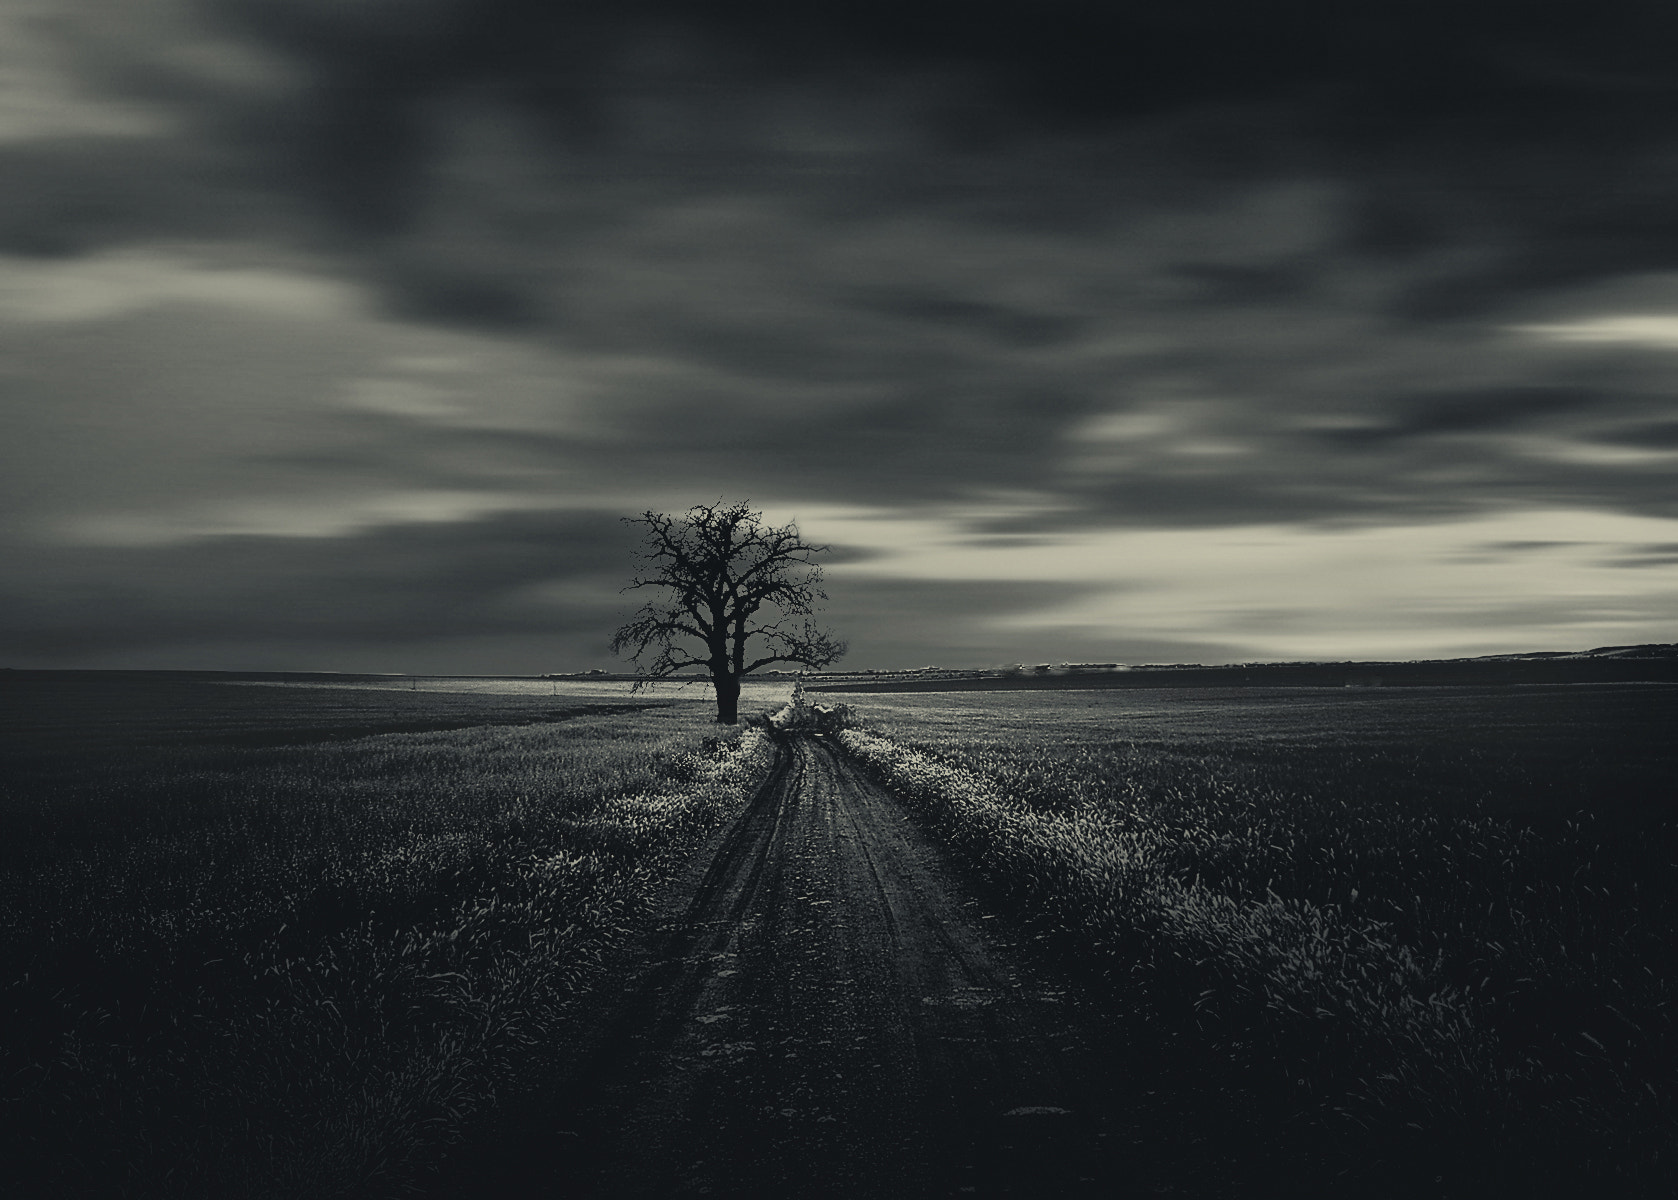 Photograph One in field by Roman Trudowoi on 500px